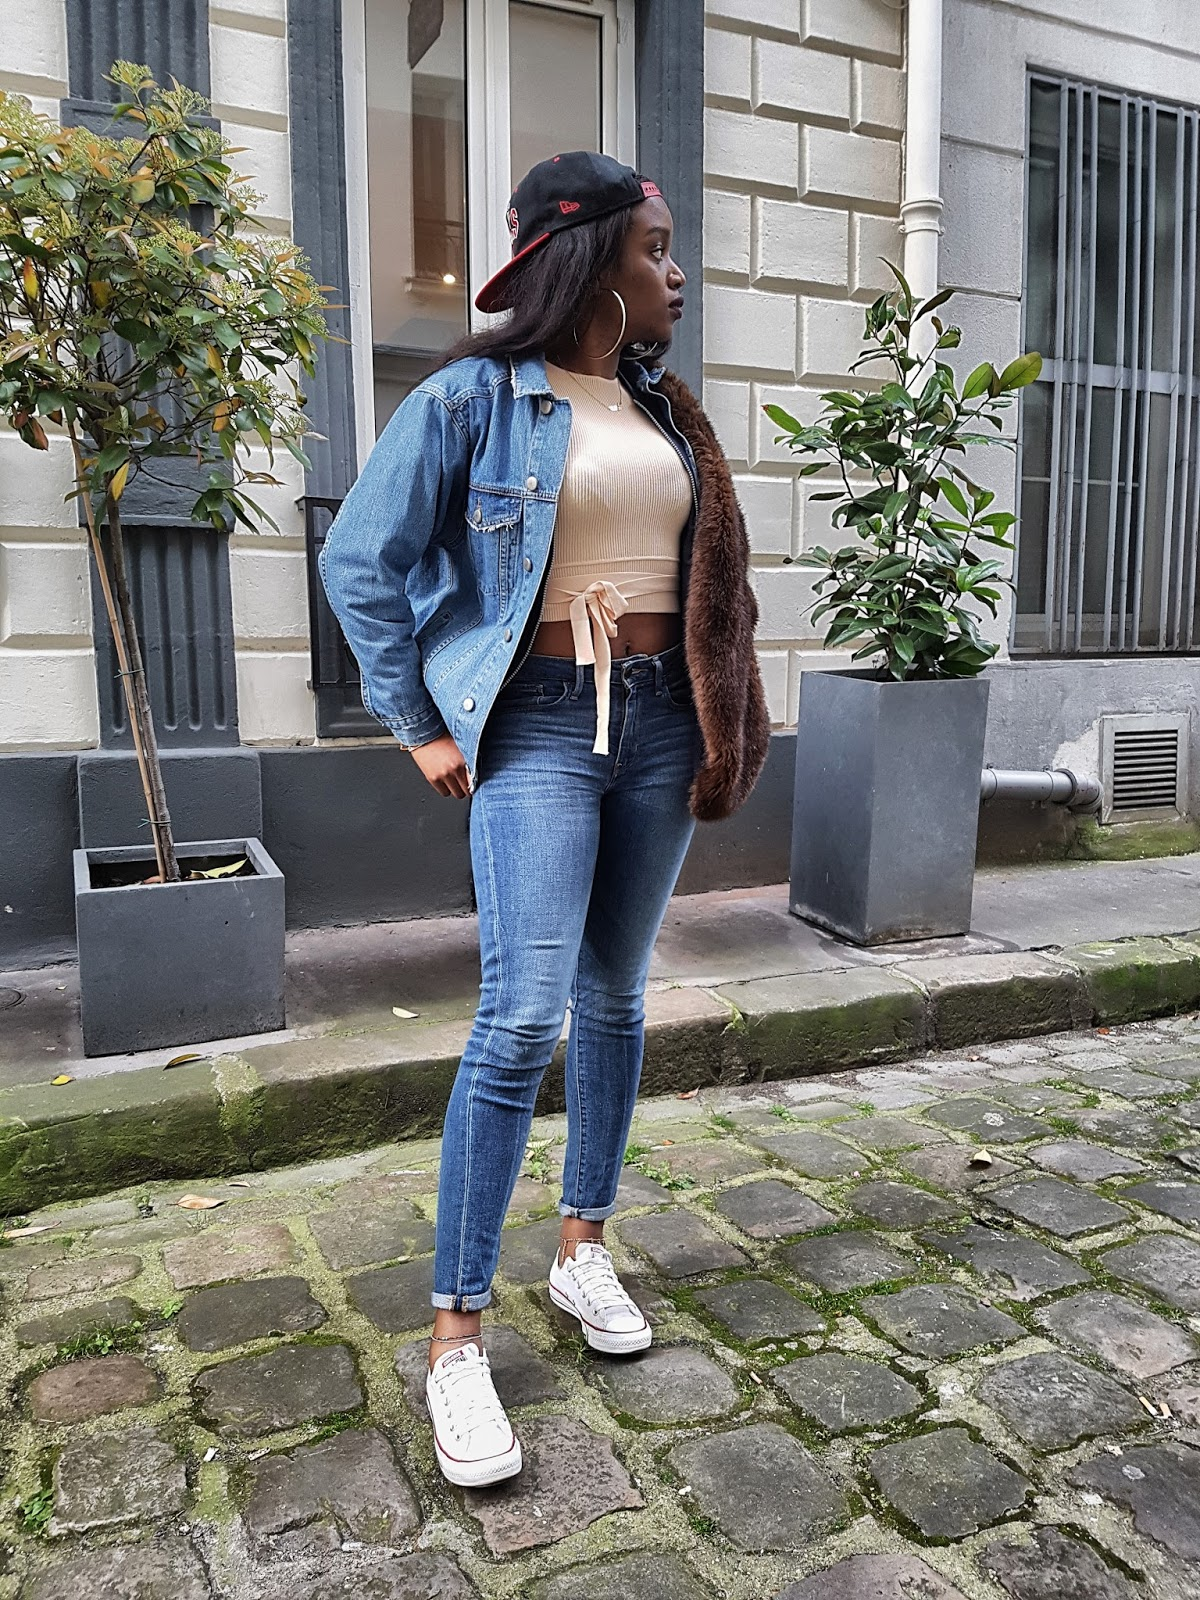 Karellou_Blog_Fashion_Lifestyle_LOOK - Denim Nineties